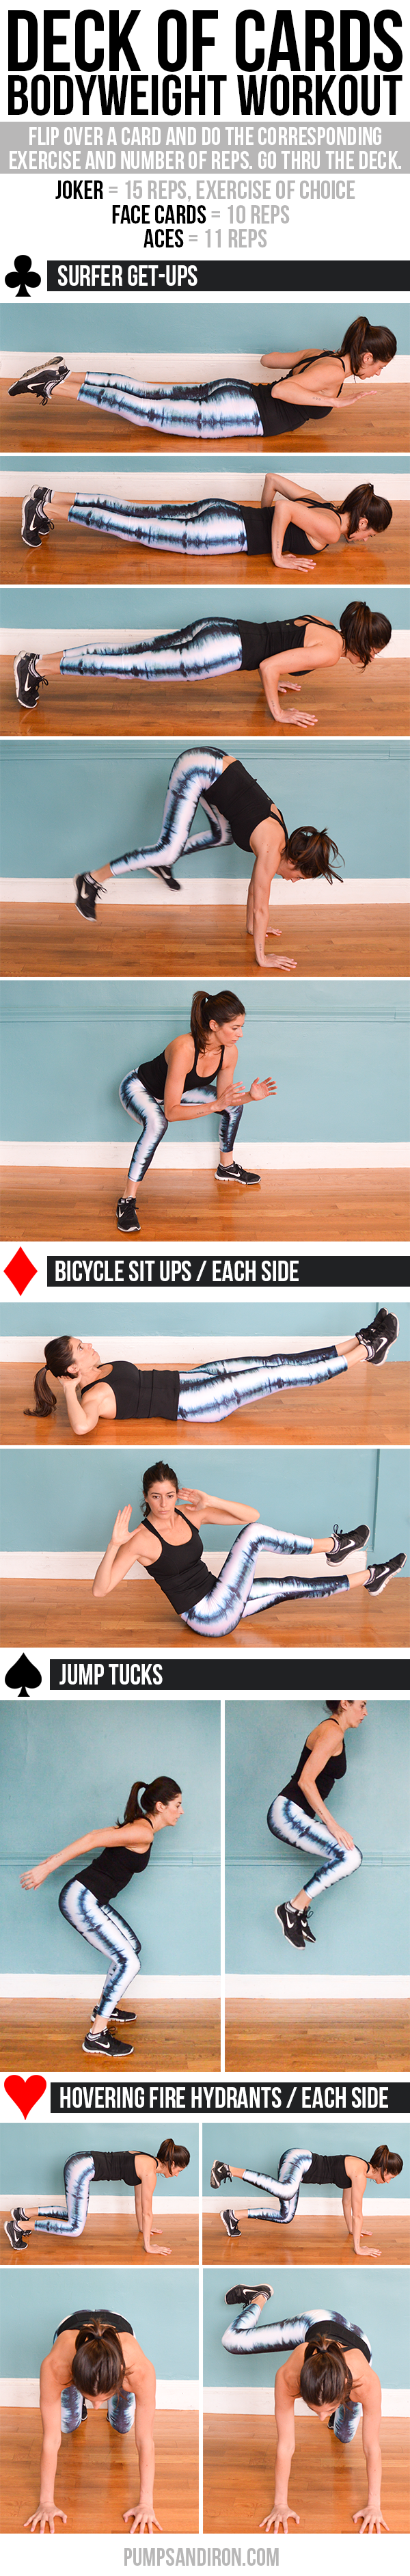 Deck of Cards Workout: Bodyweight Exercises - each suit corresponds to a different exercise and the number tells you how many reps to do. Flip over one card at a time until you make your way through the entire deck.